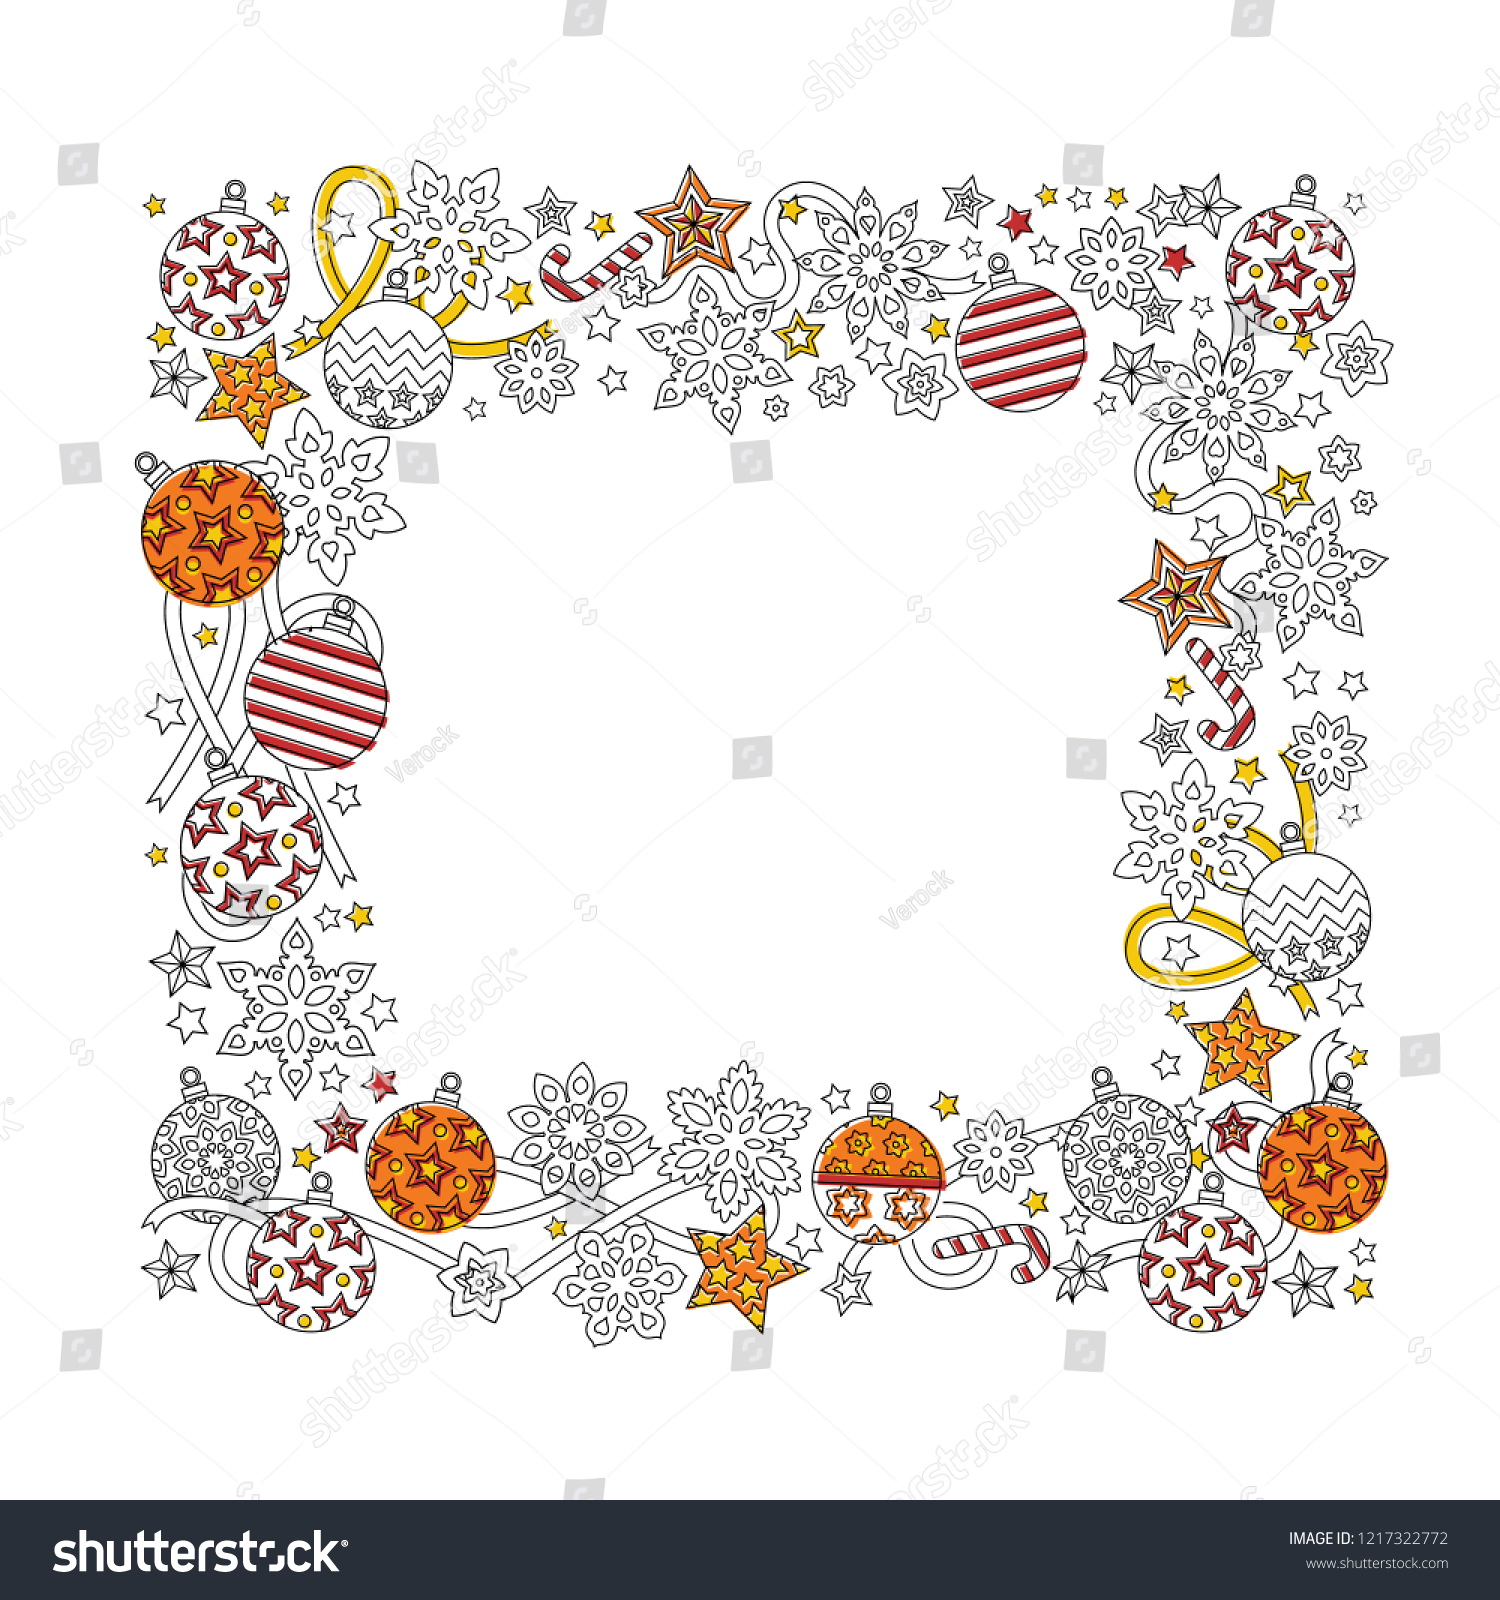 stock vector new year hand drawn square frame in zentangle inspired style isolated on white background